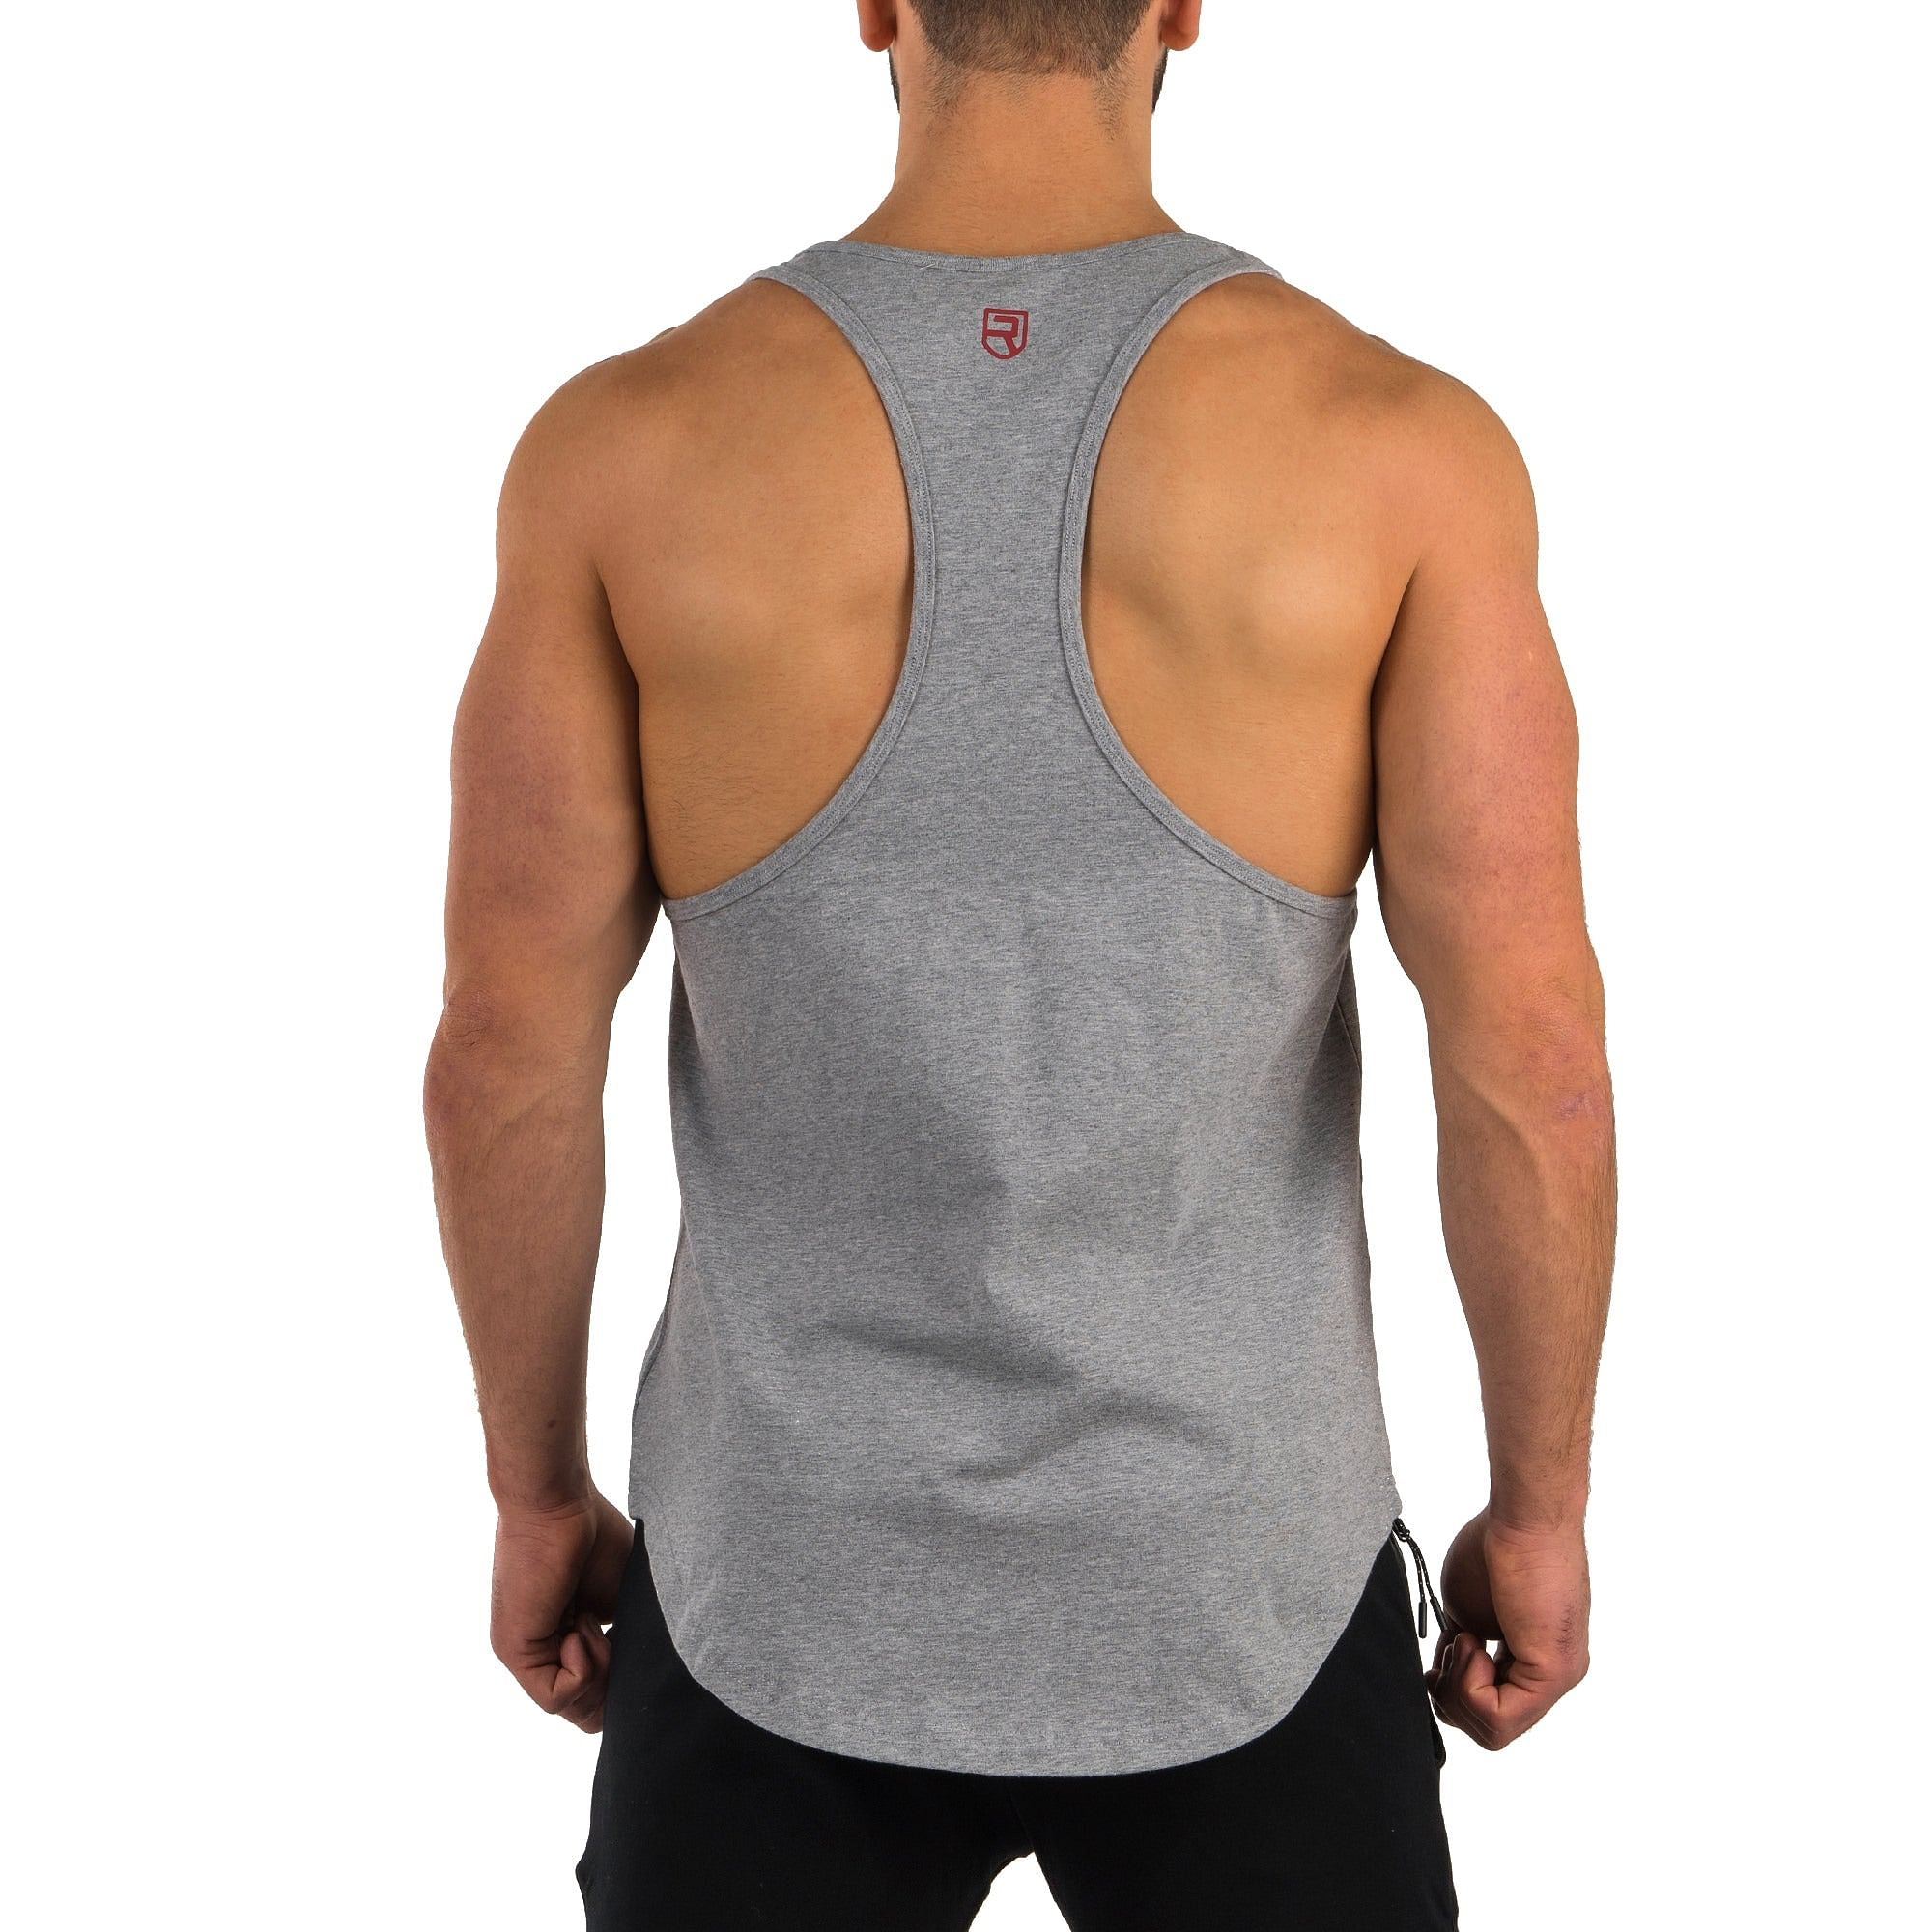 Legends Never Die Stringer – Grey - Rise